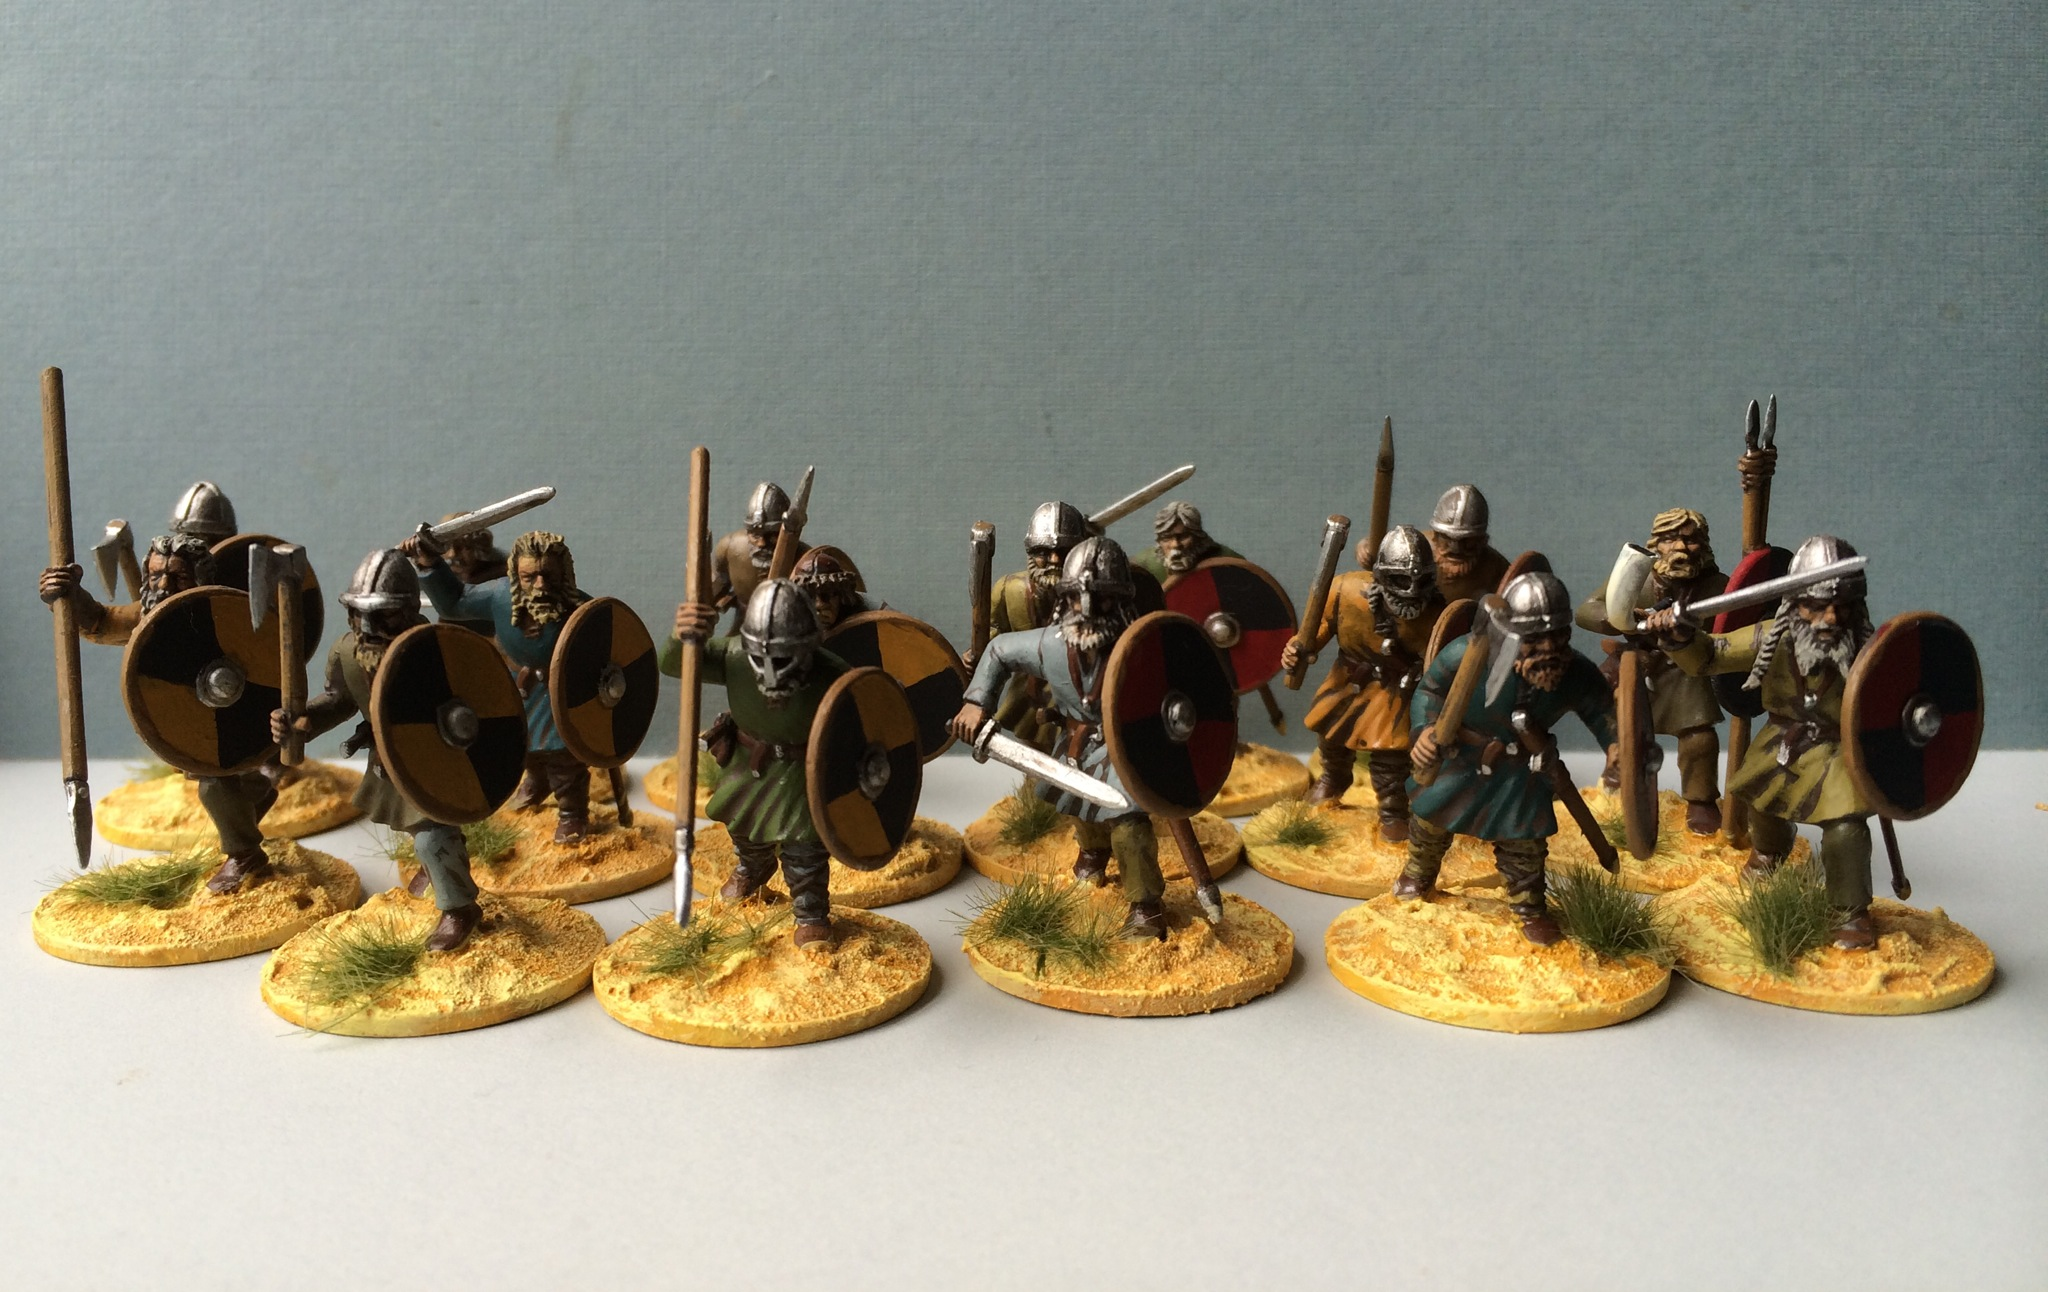 Two groups of basic warriors